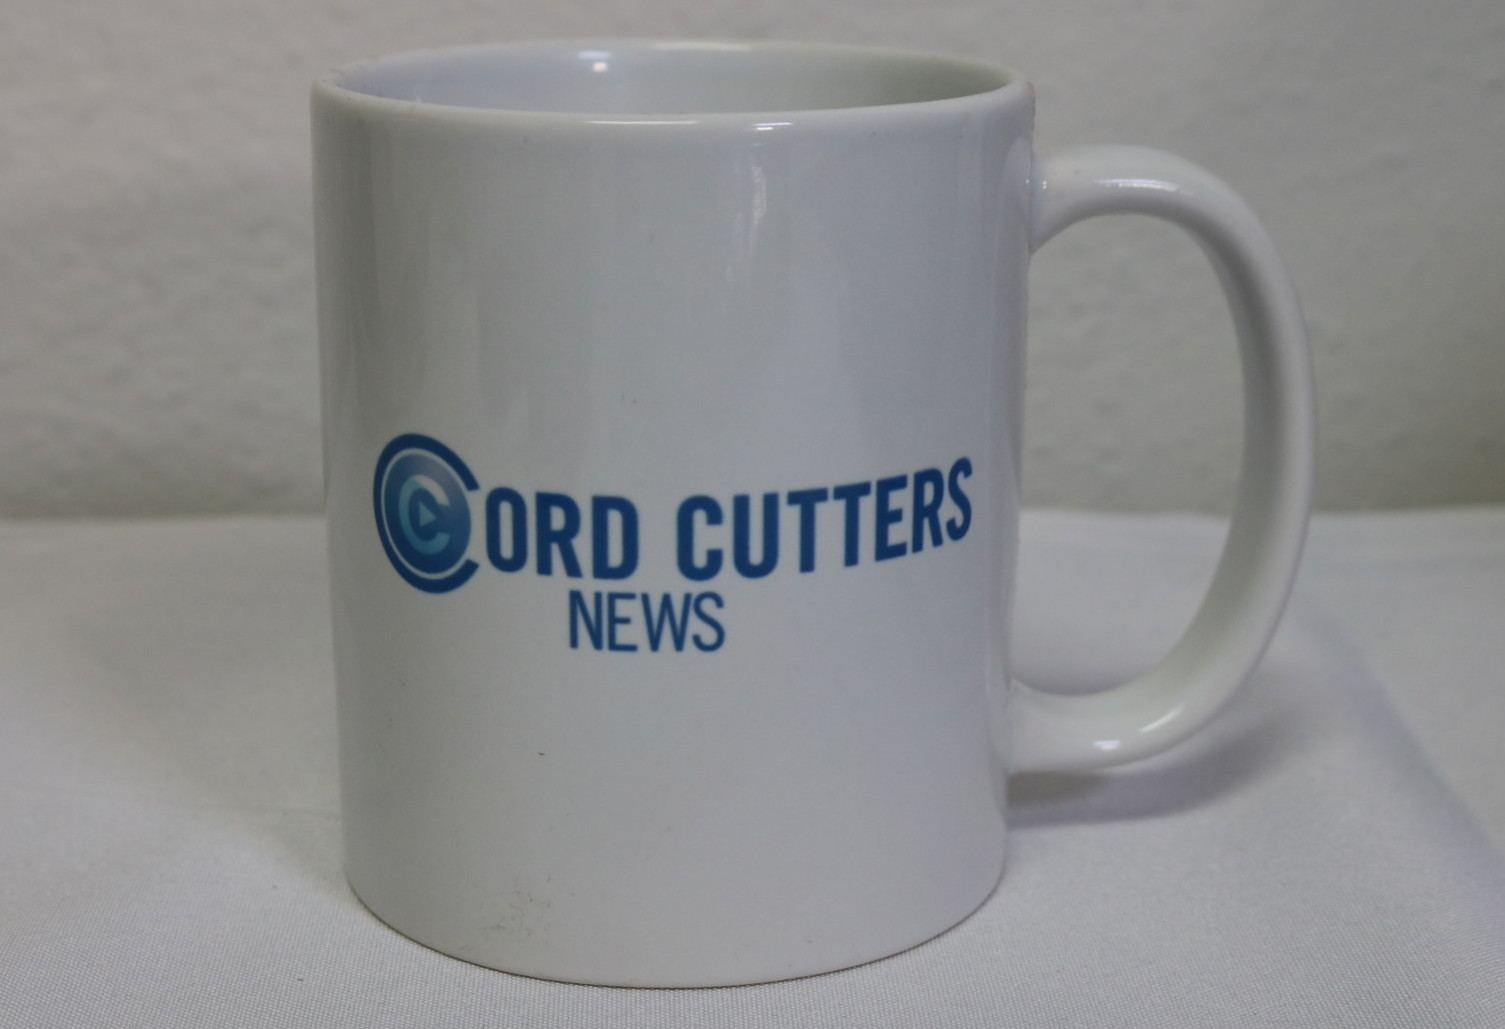 Tea Mugs For Sale Cord Cutters News Coffee Mugs Are Now For Sale Cord